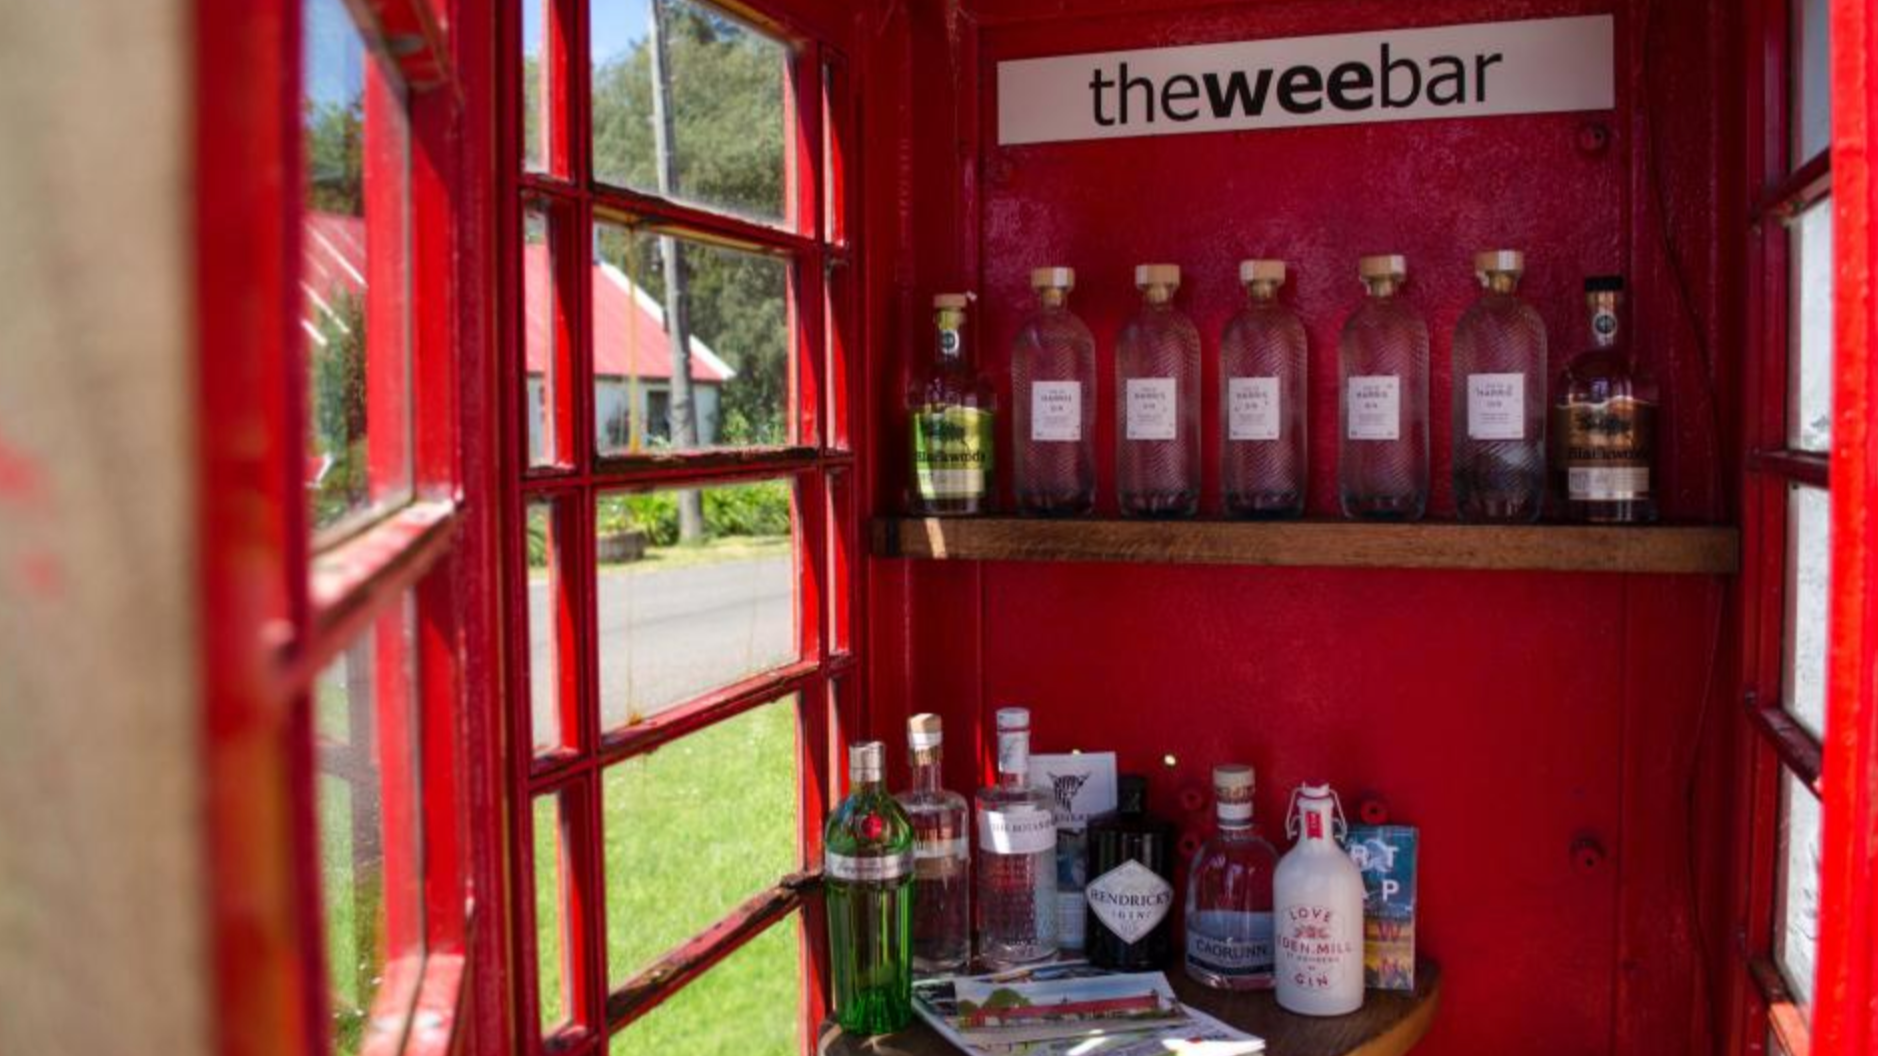 Drinks Are Free In What Could Be The Smallest Bar In The World